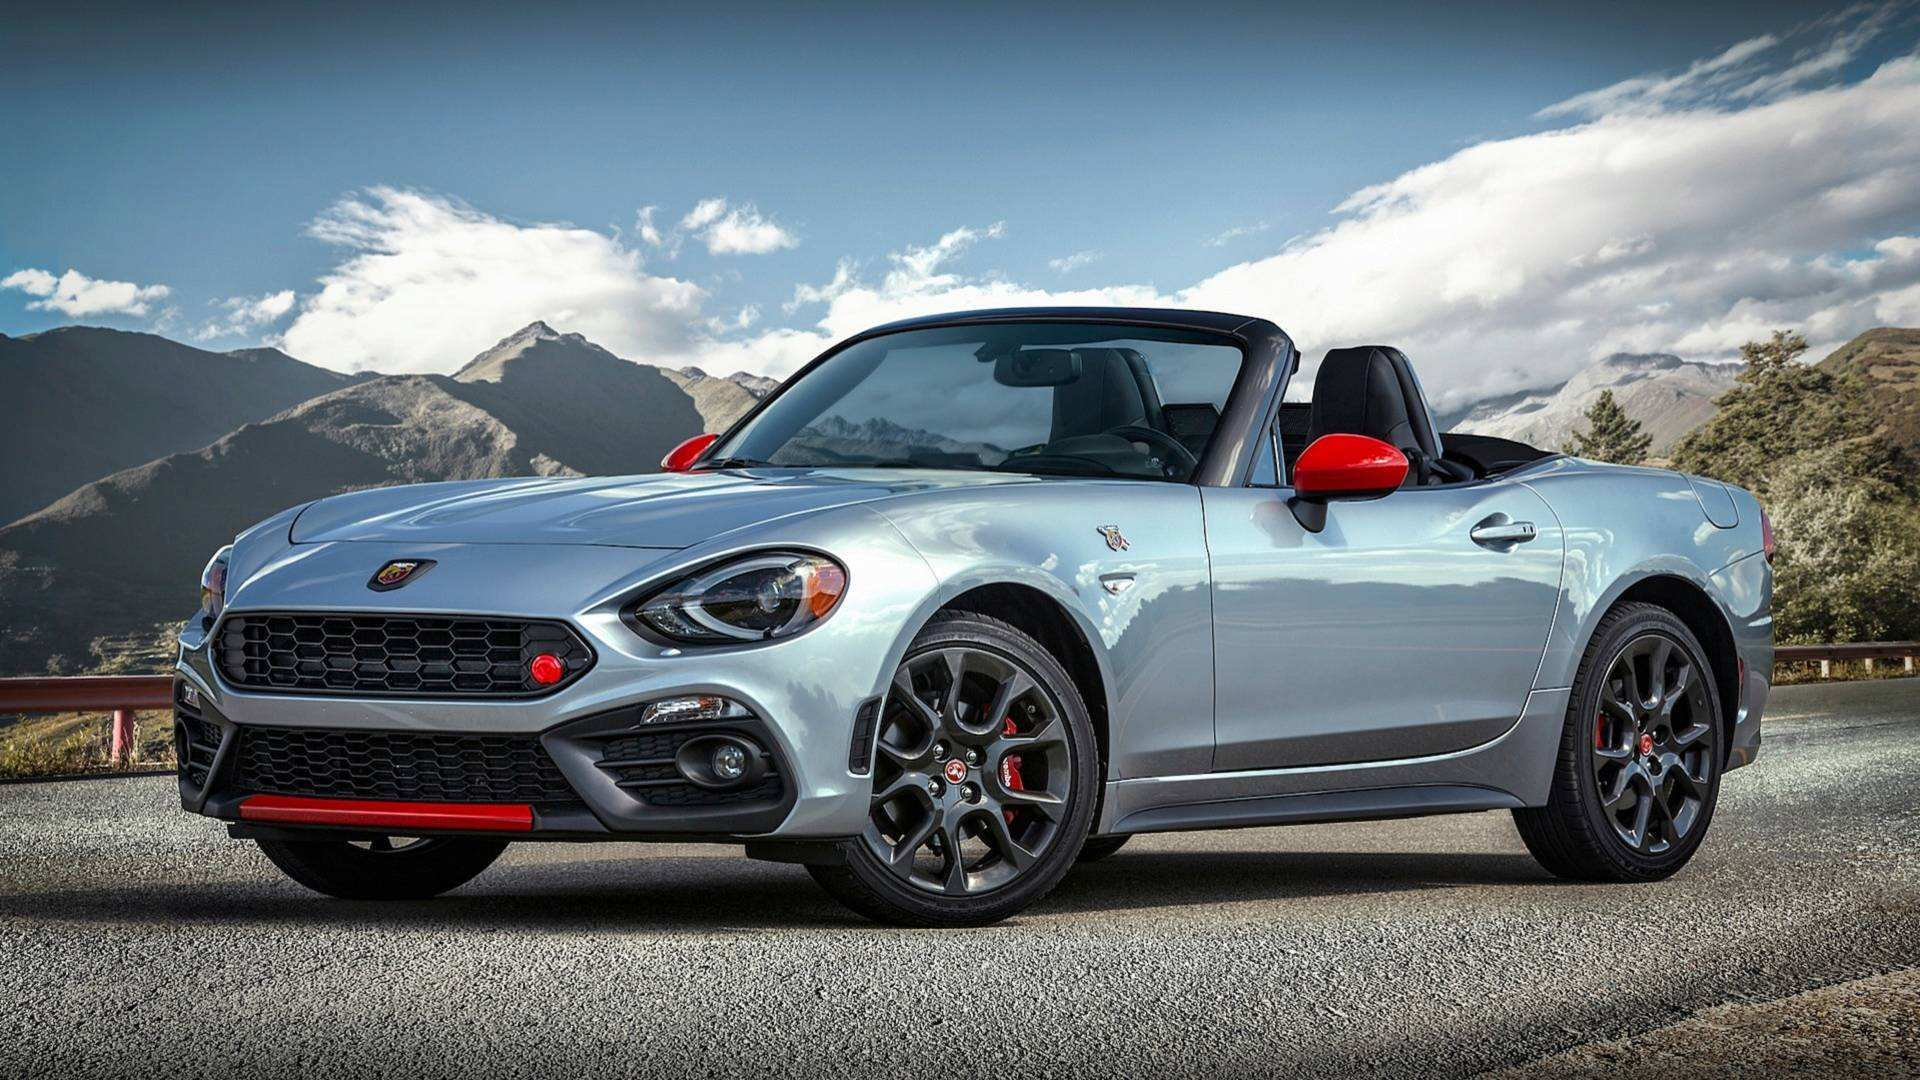 86 Concept of 2019 Fiat 124 Spider Lusso Performance with 2019 Fiat 124 Spider Lusso